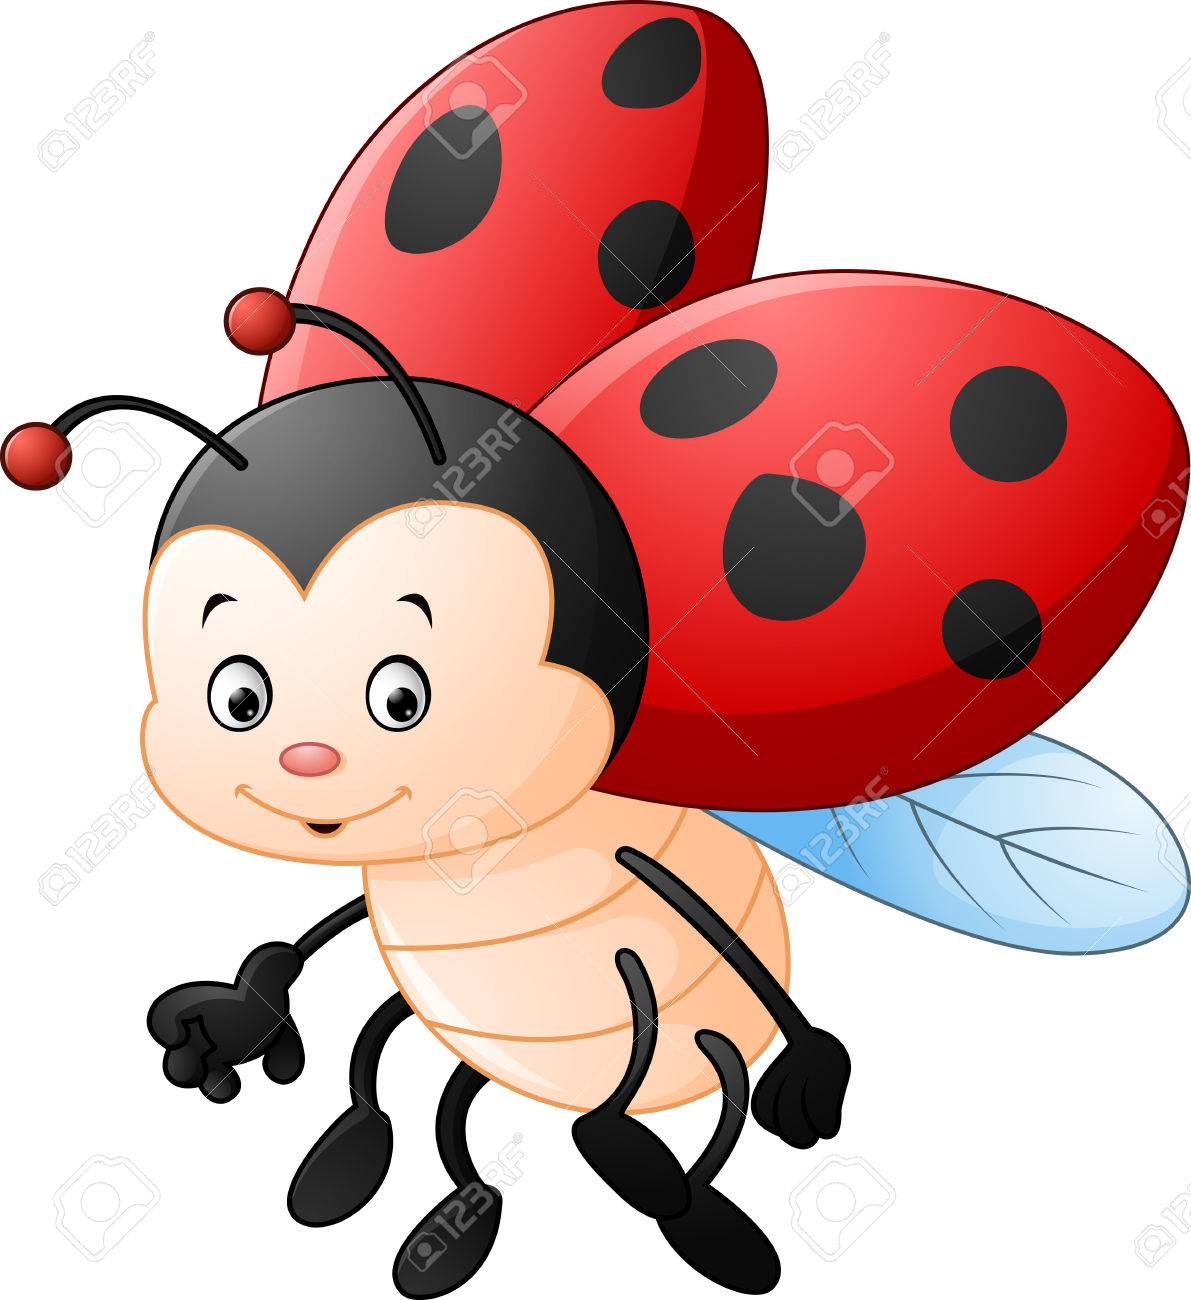 A Cartoon Ladybug cartoon ladybug waving